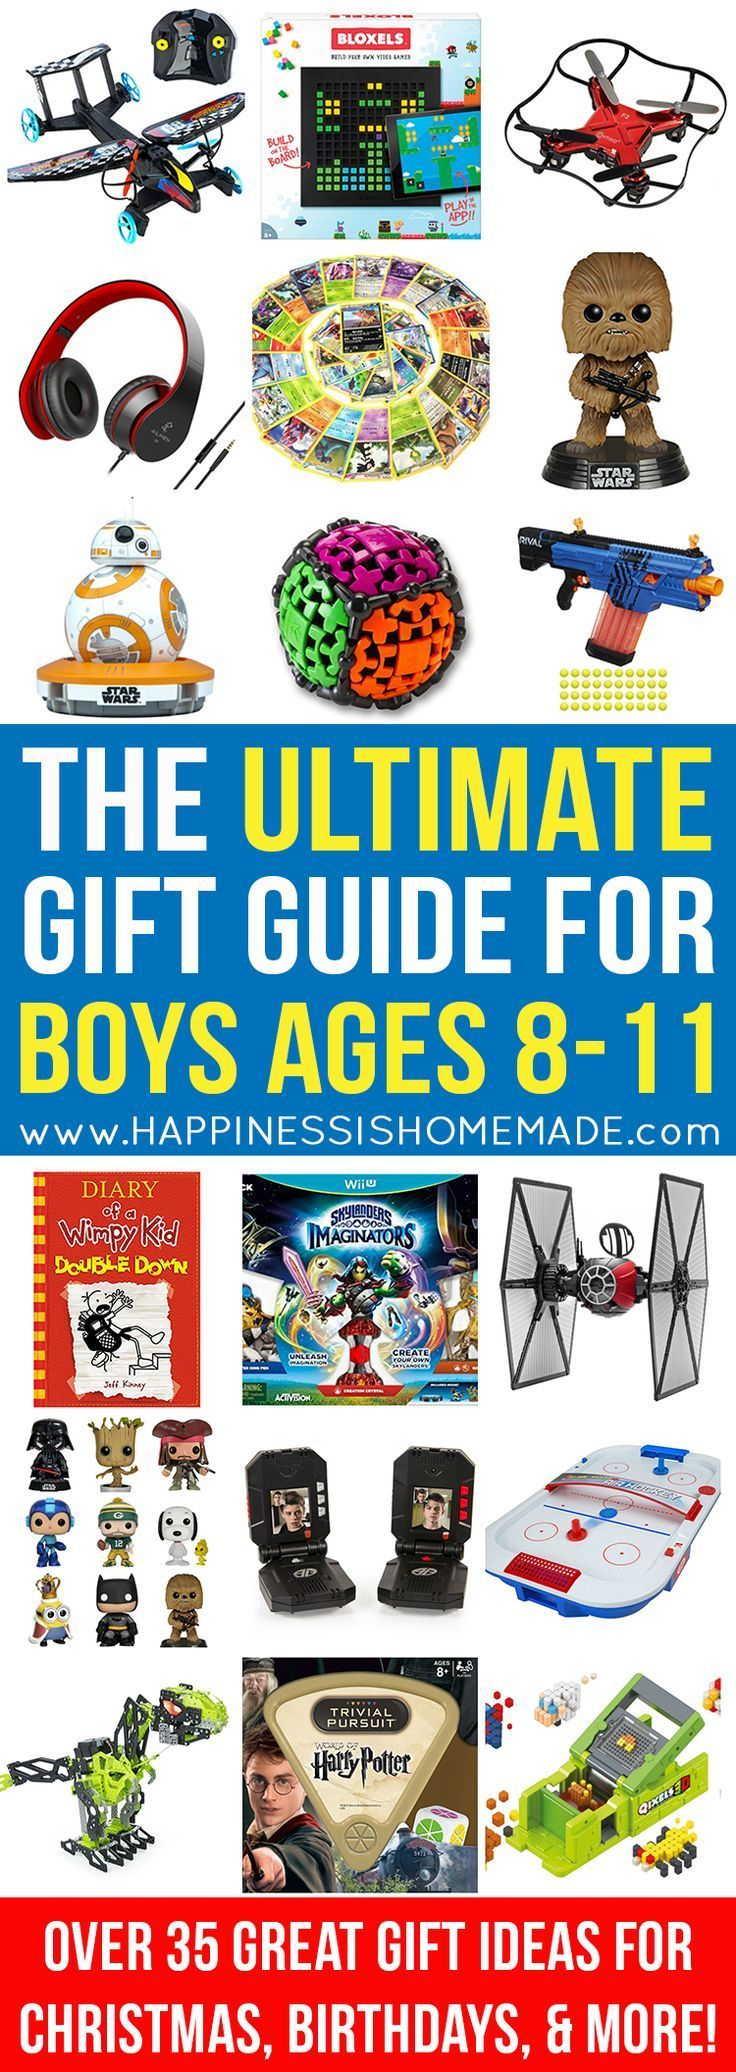 Top Toys For Boys Ages 5 8 : Best images about toys for year old girls on